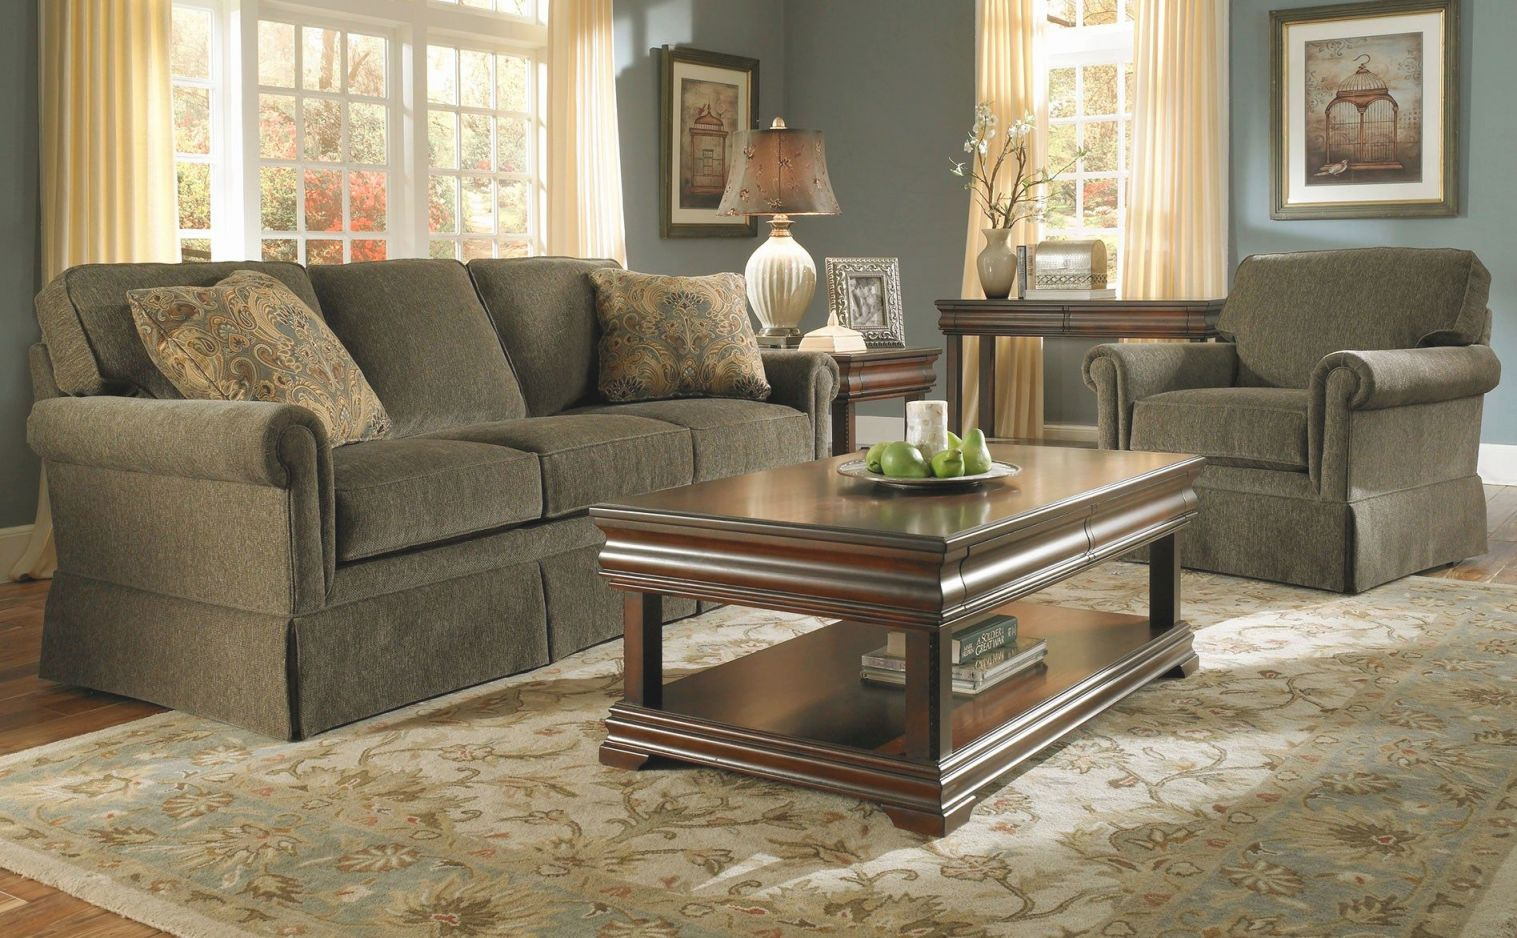 Picture of: Pingreat Sofas On Leather Sofa Olive Green Couches Pertaining To Inspirational Broyhill Living Room Furniture Awesome Decors